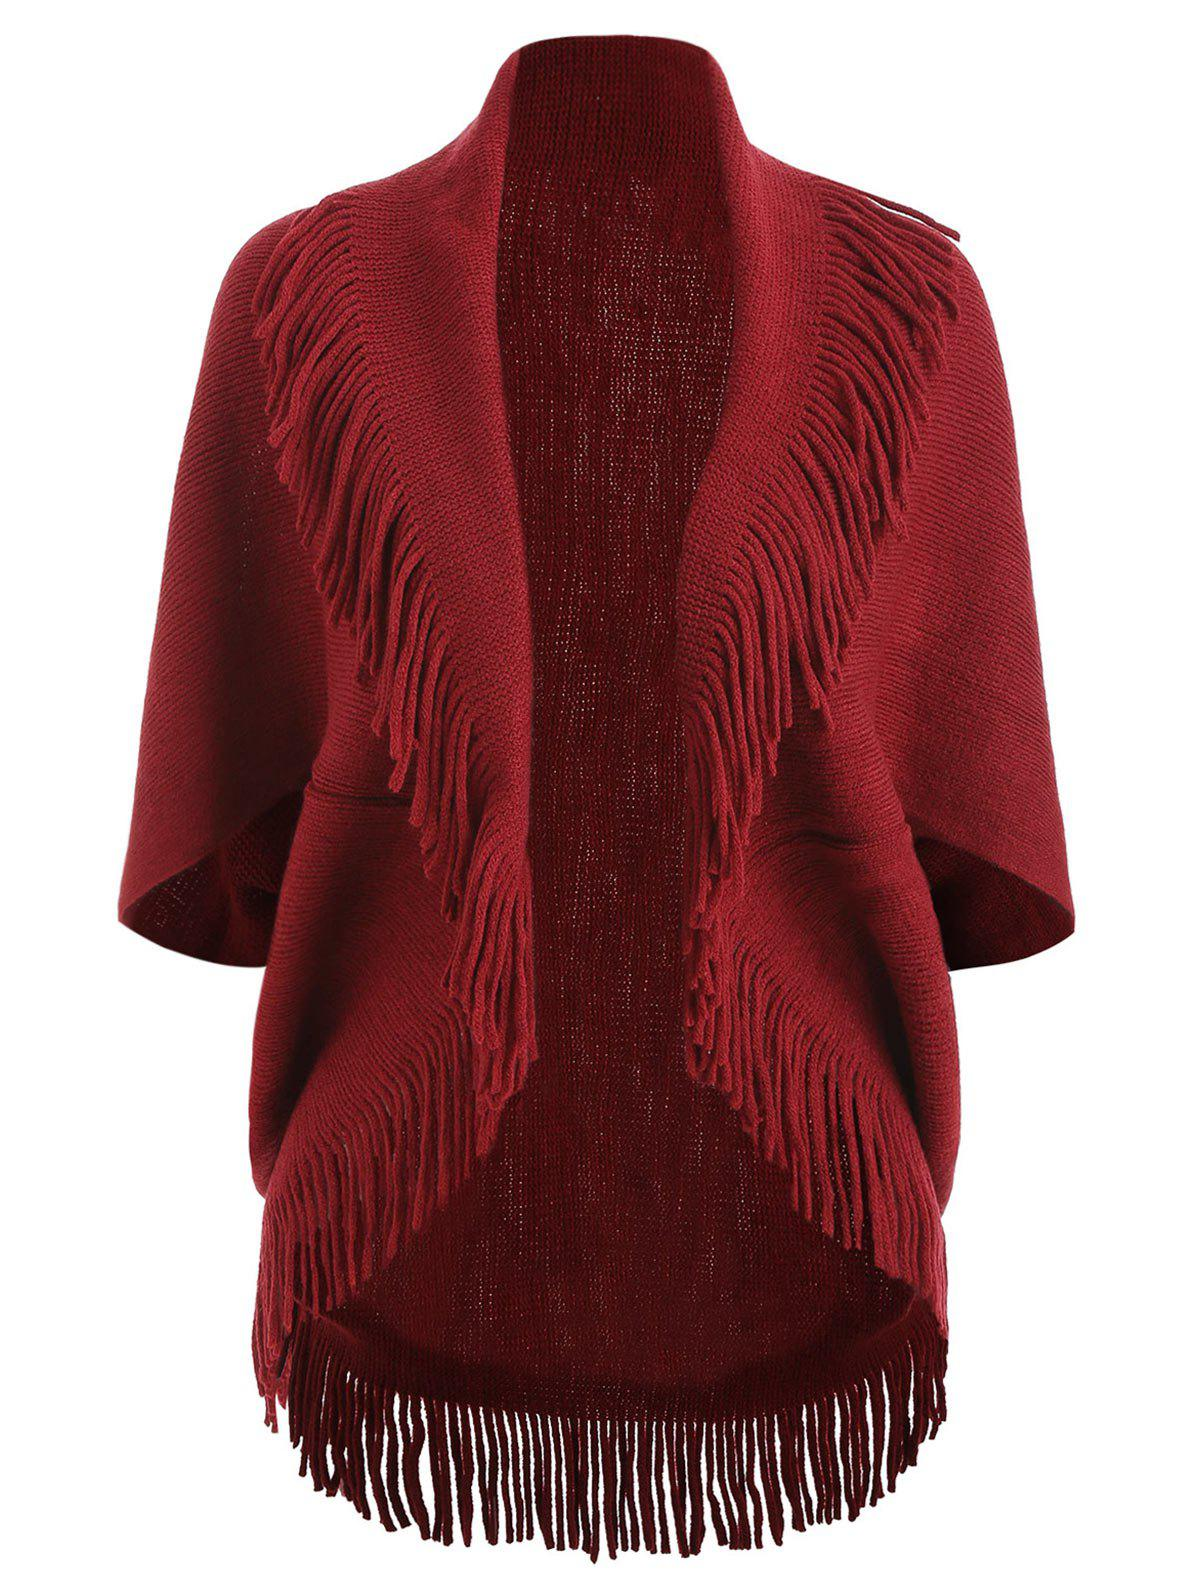 Fringe Short Sleeve Knit Cardigan, Red wine